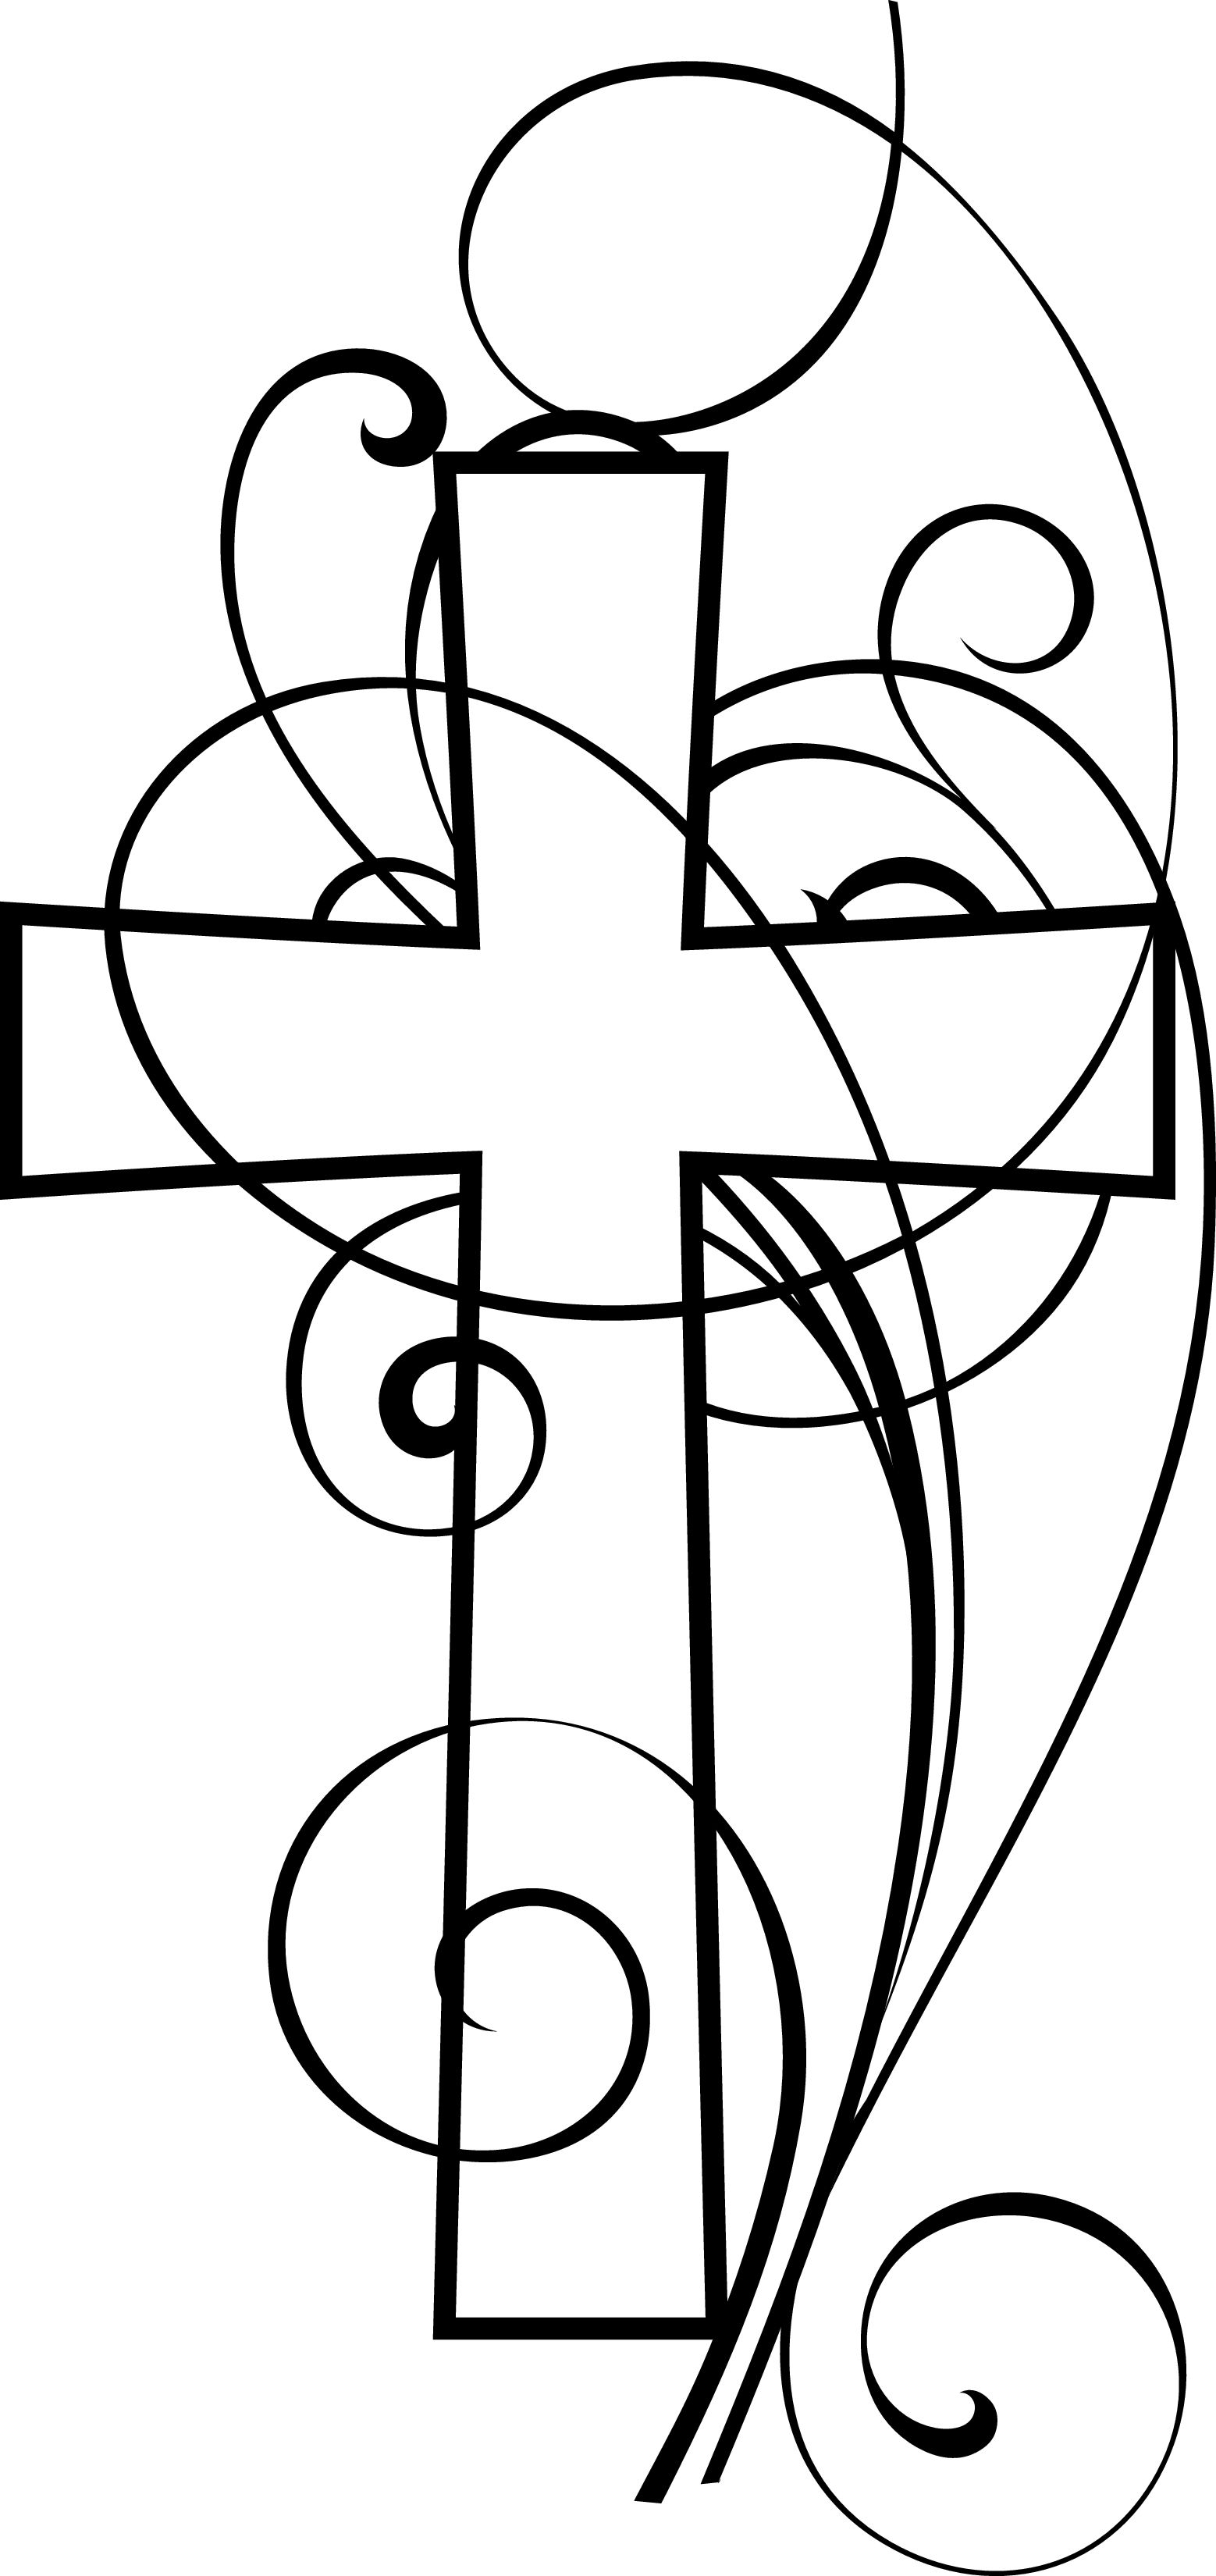 Line Art Cross : Cross clipart google search bible teaching resources